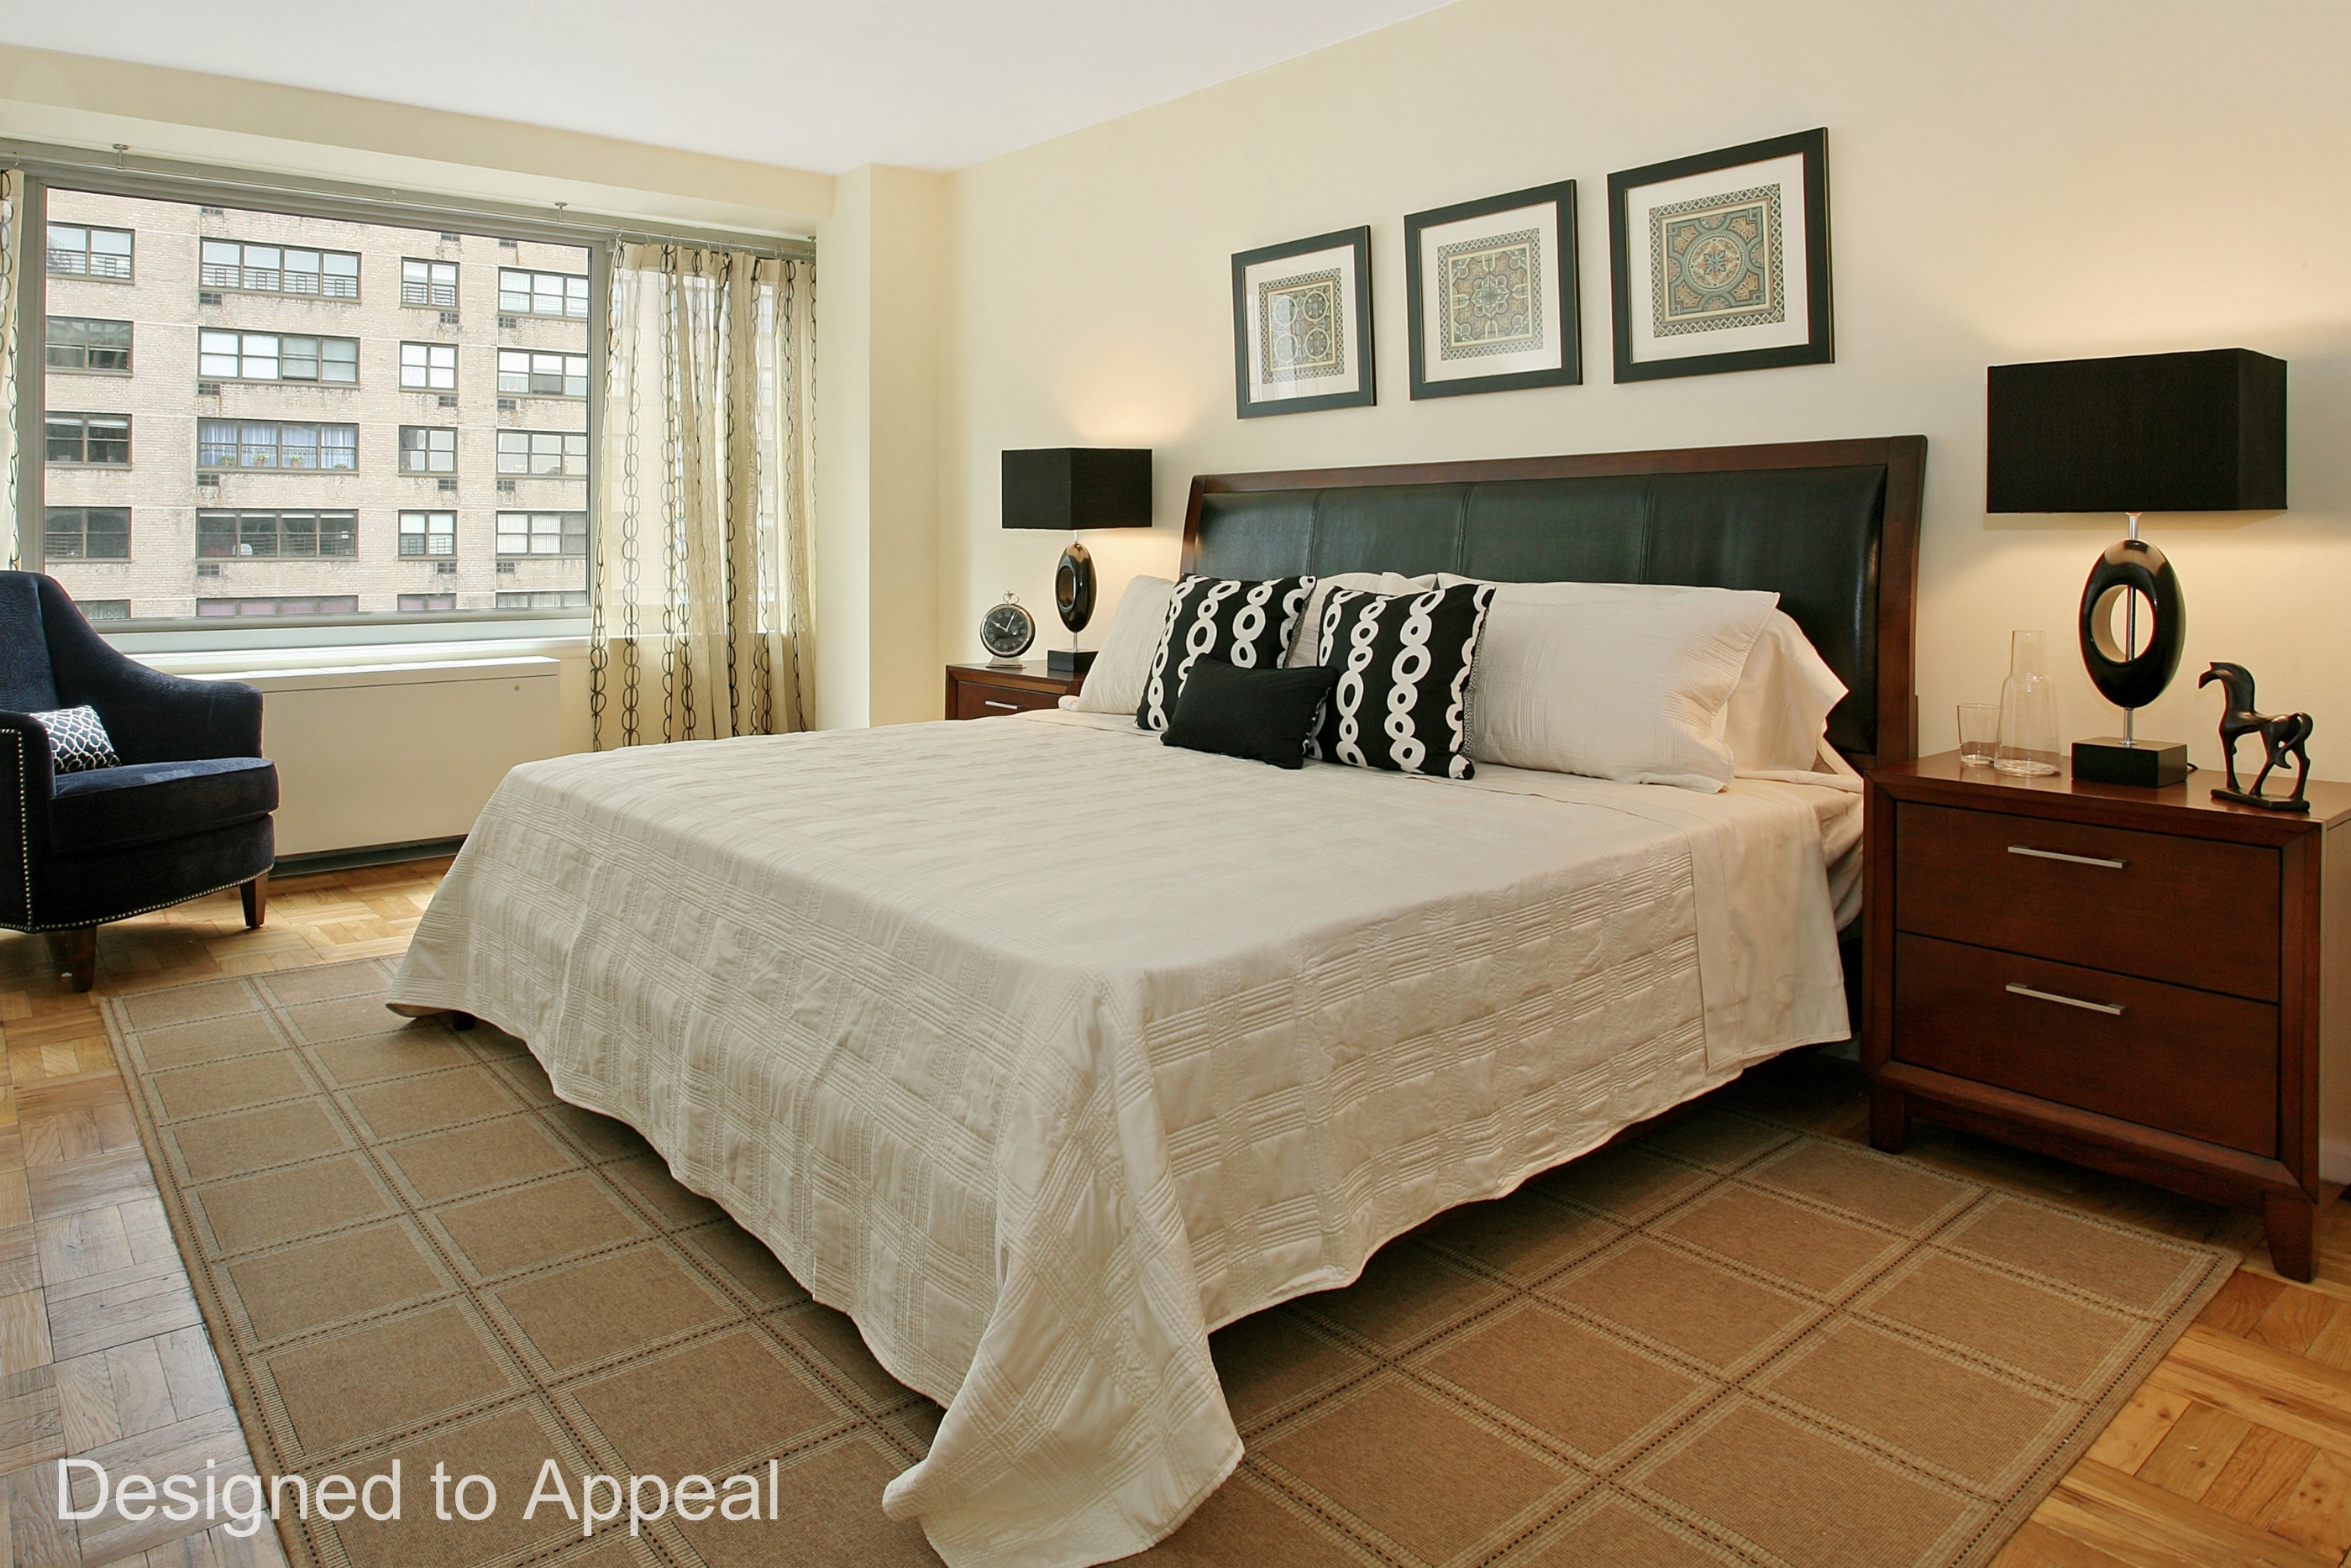 Master bedroom rugs ... spectacular idea area rugs for bedroom 7 bedroom with area rug. nmelszr